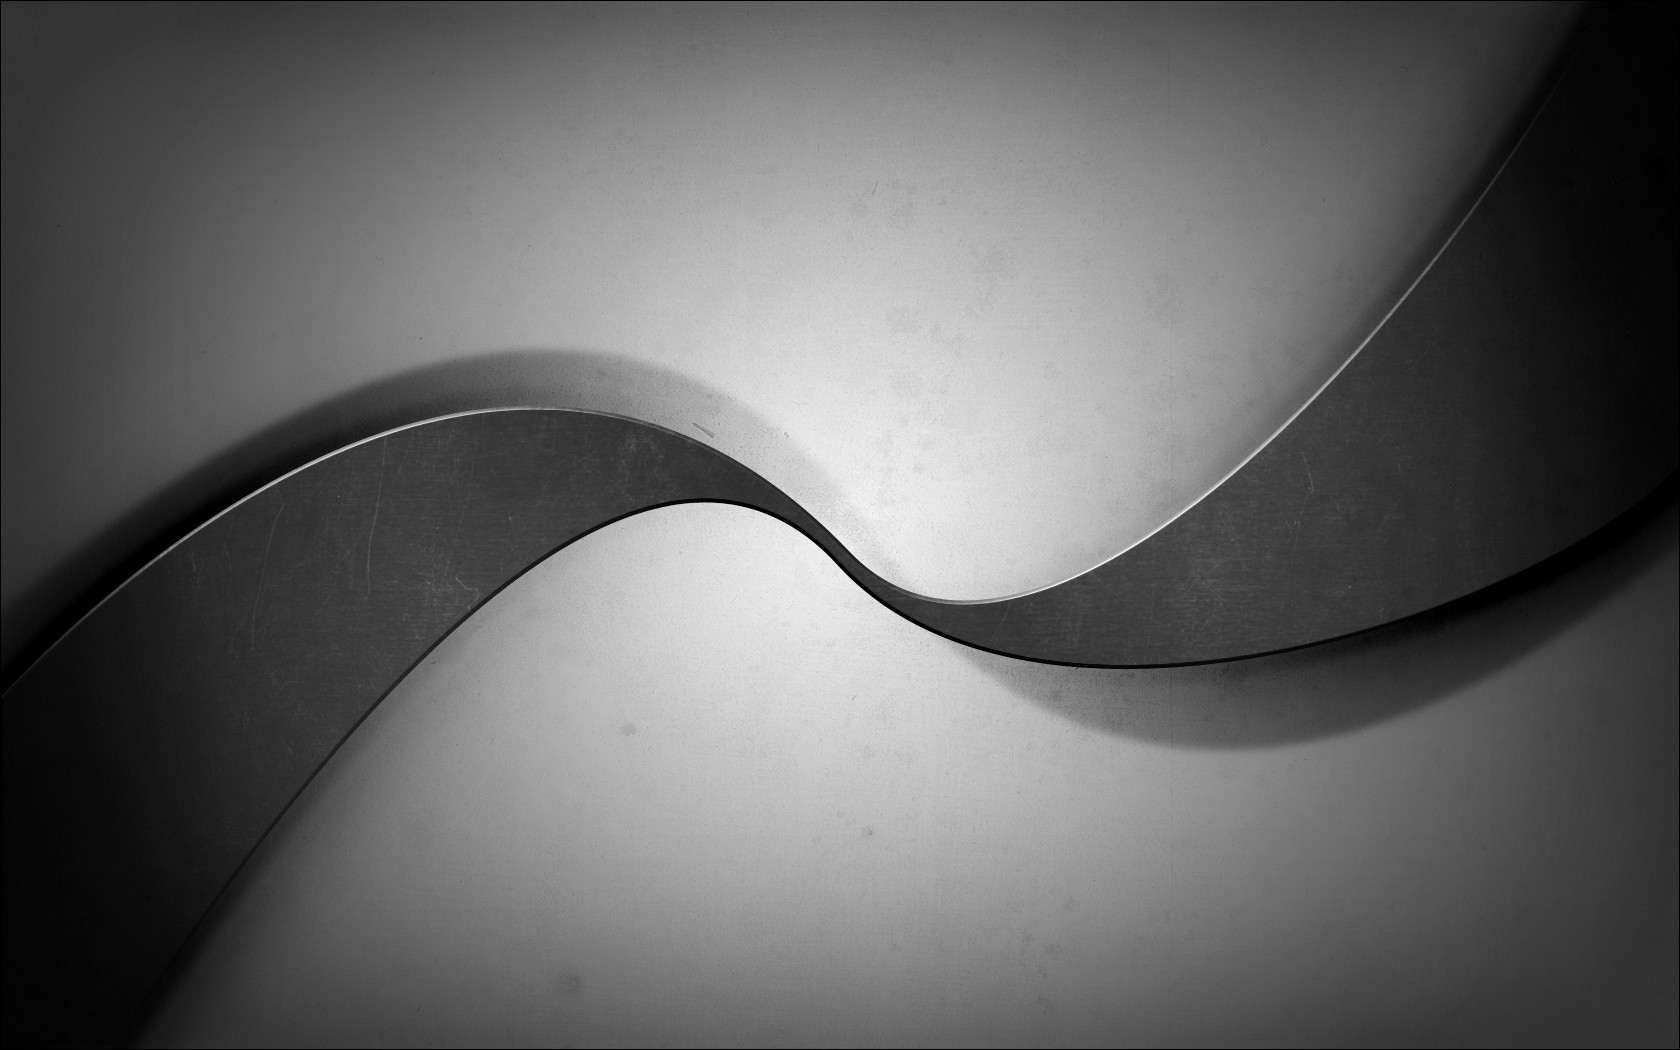 Black Gray Grey White Curves Abstract   1680x1050 iWallHD   Wallpaper 1680x1050